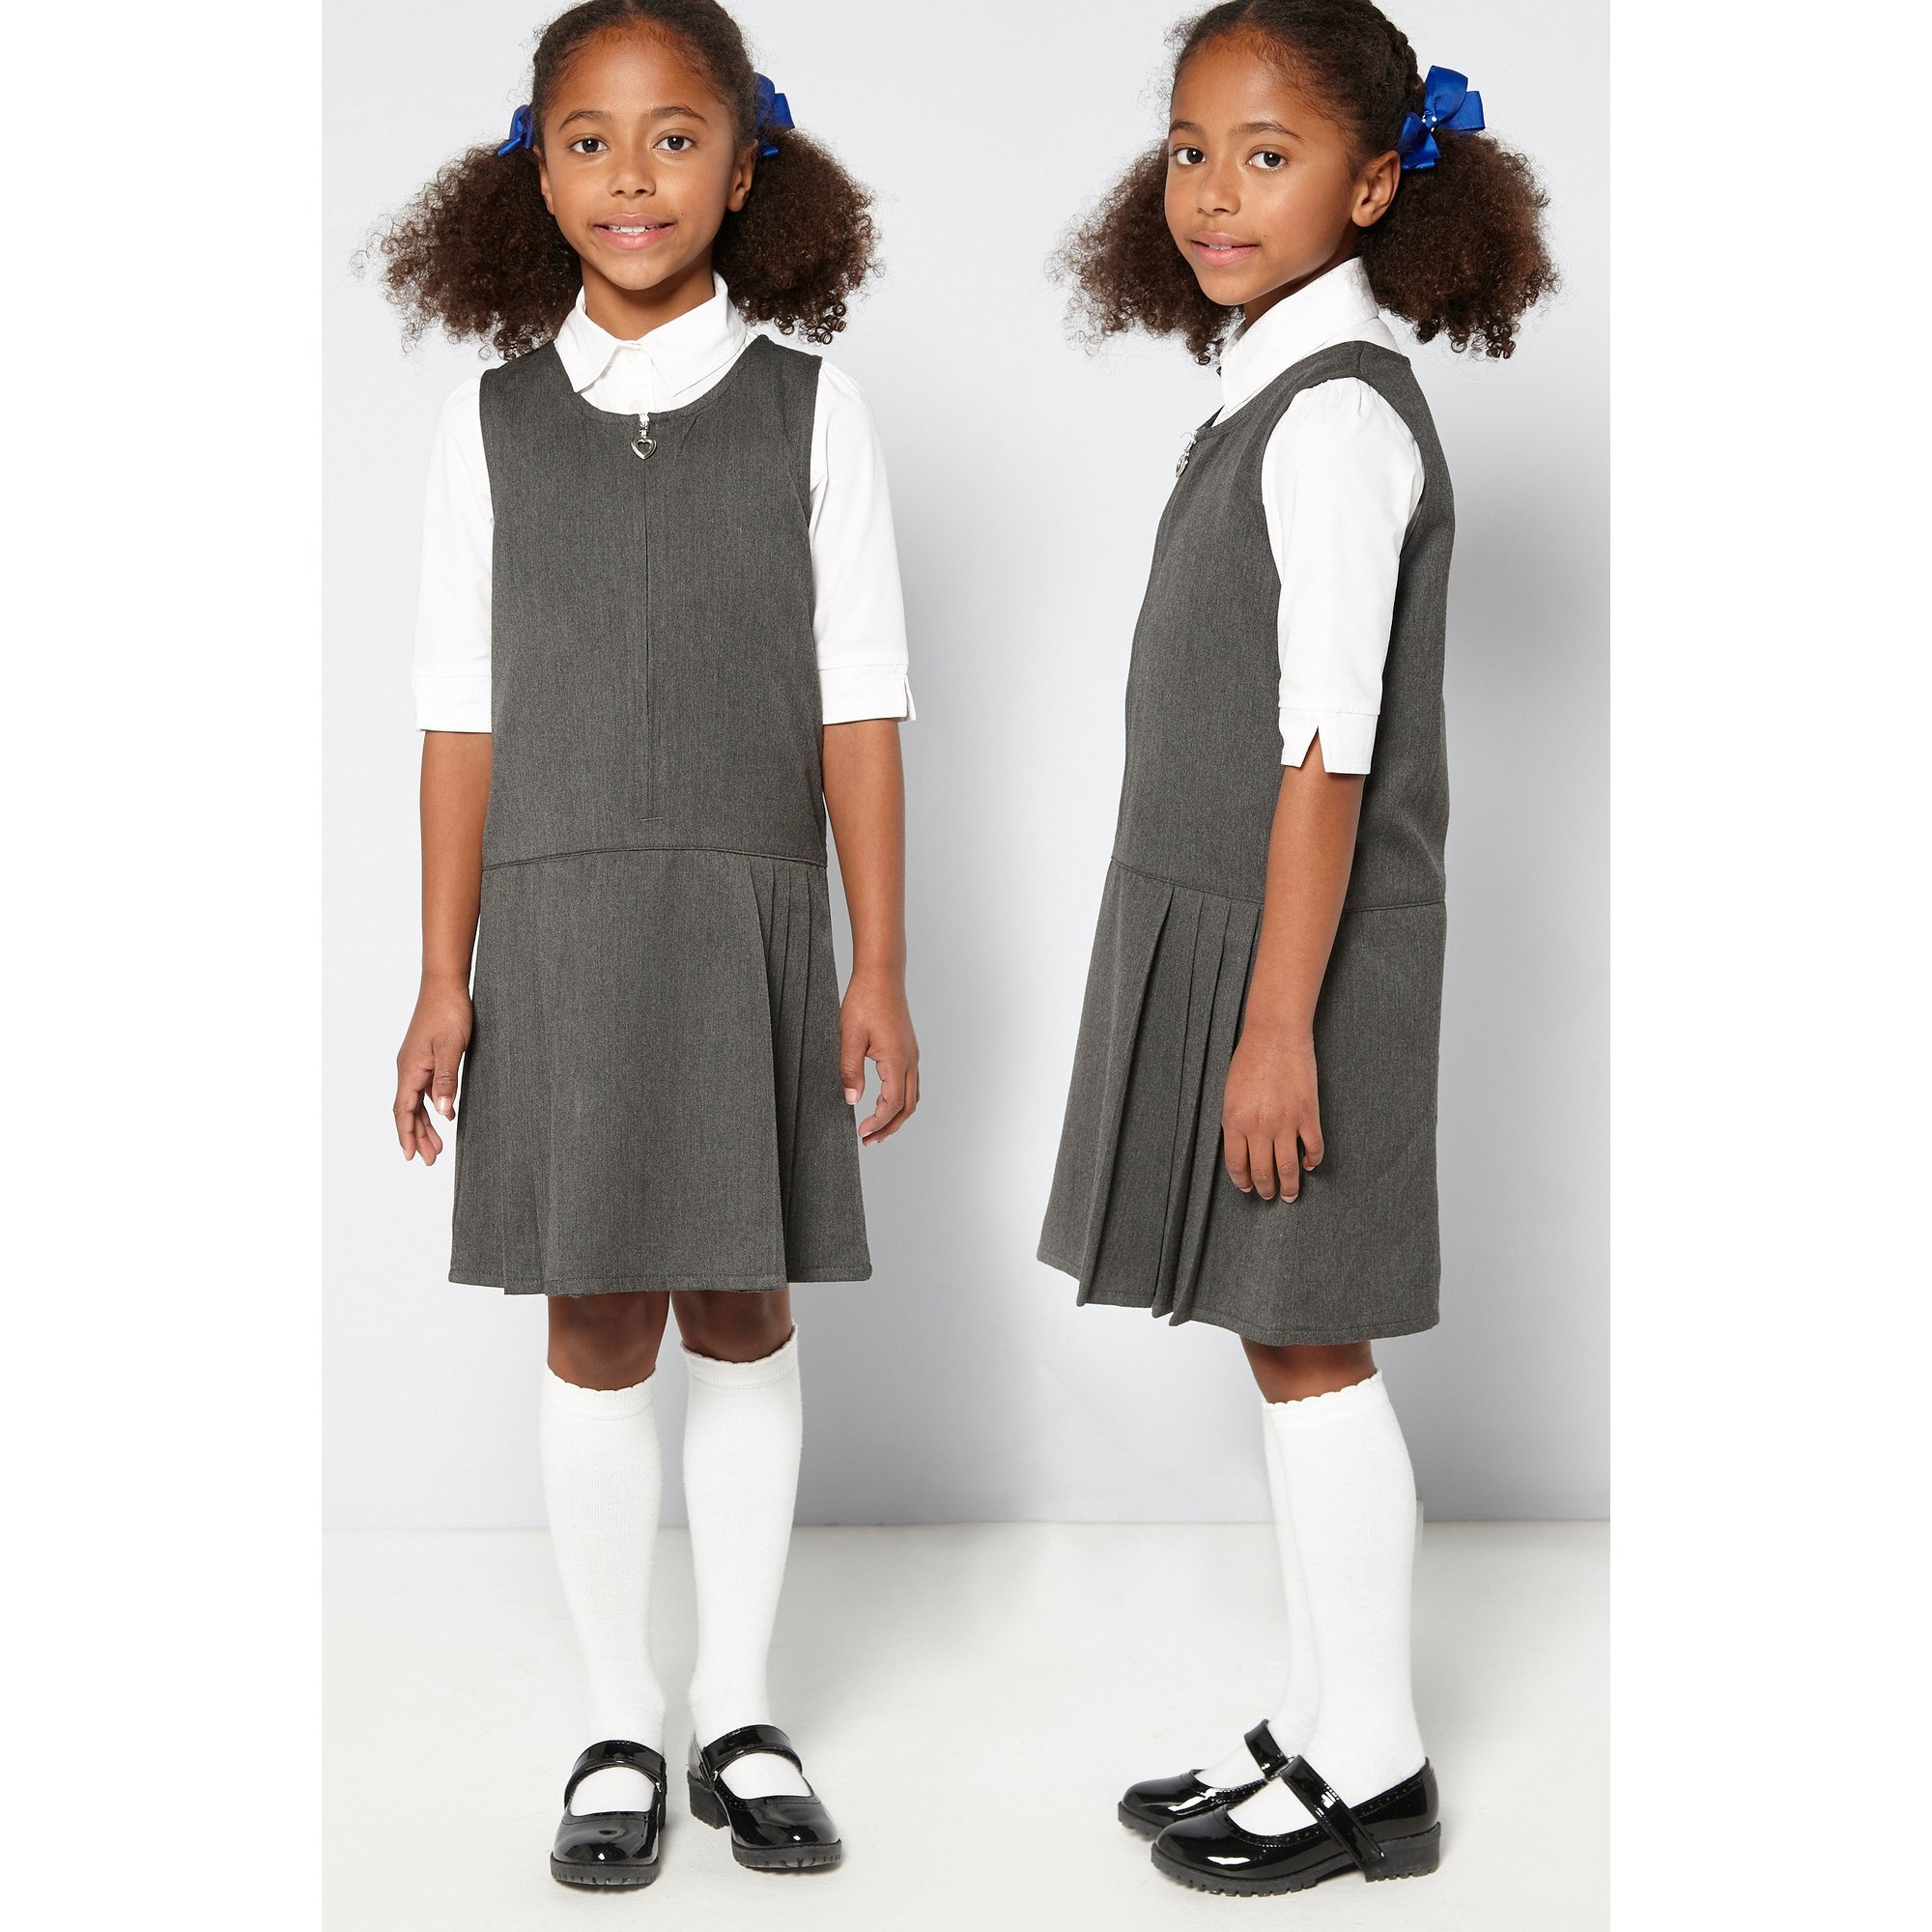 Image of Girls Pack of 2 Pinafores